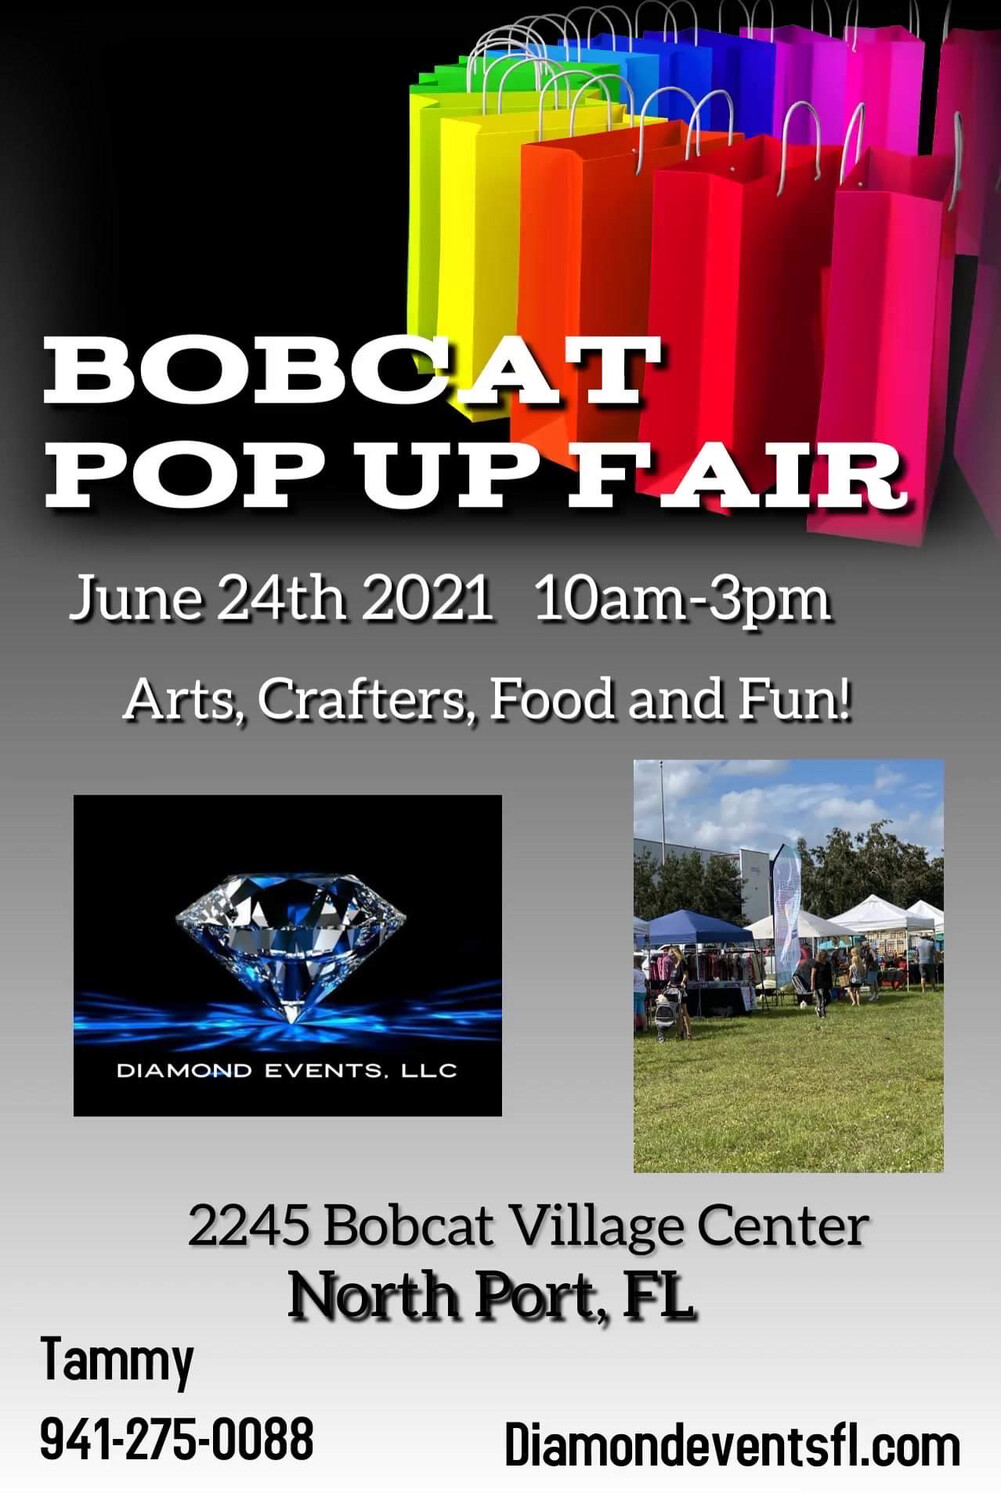 Bobcat Outdoor 10-3pm June 26th 2021